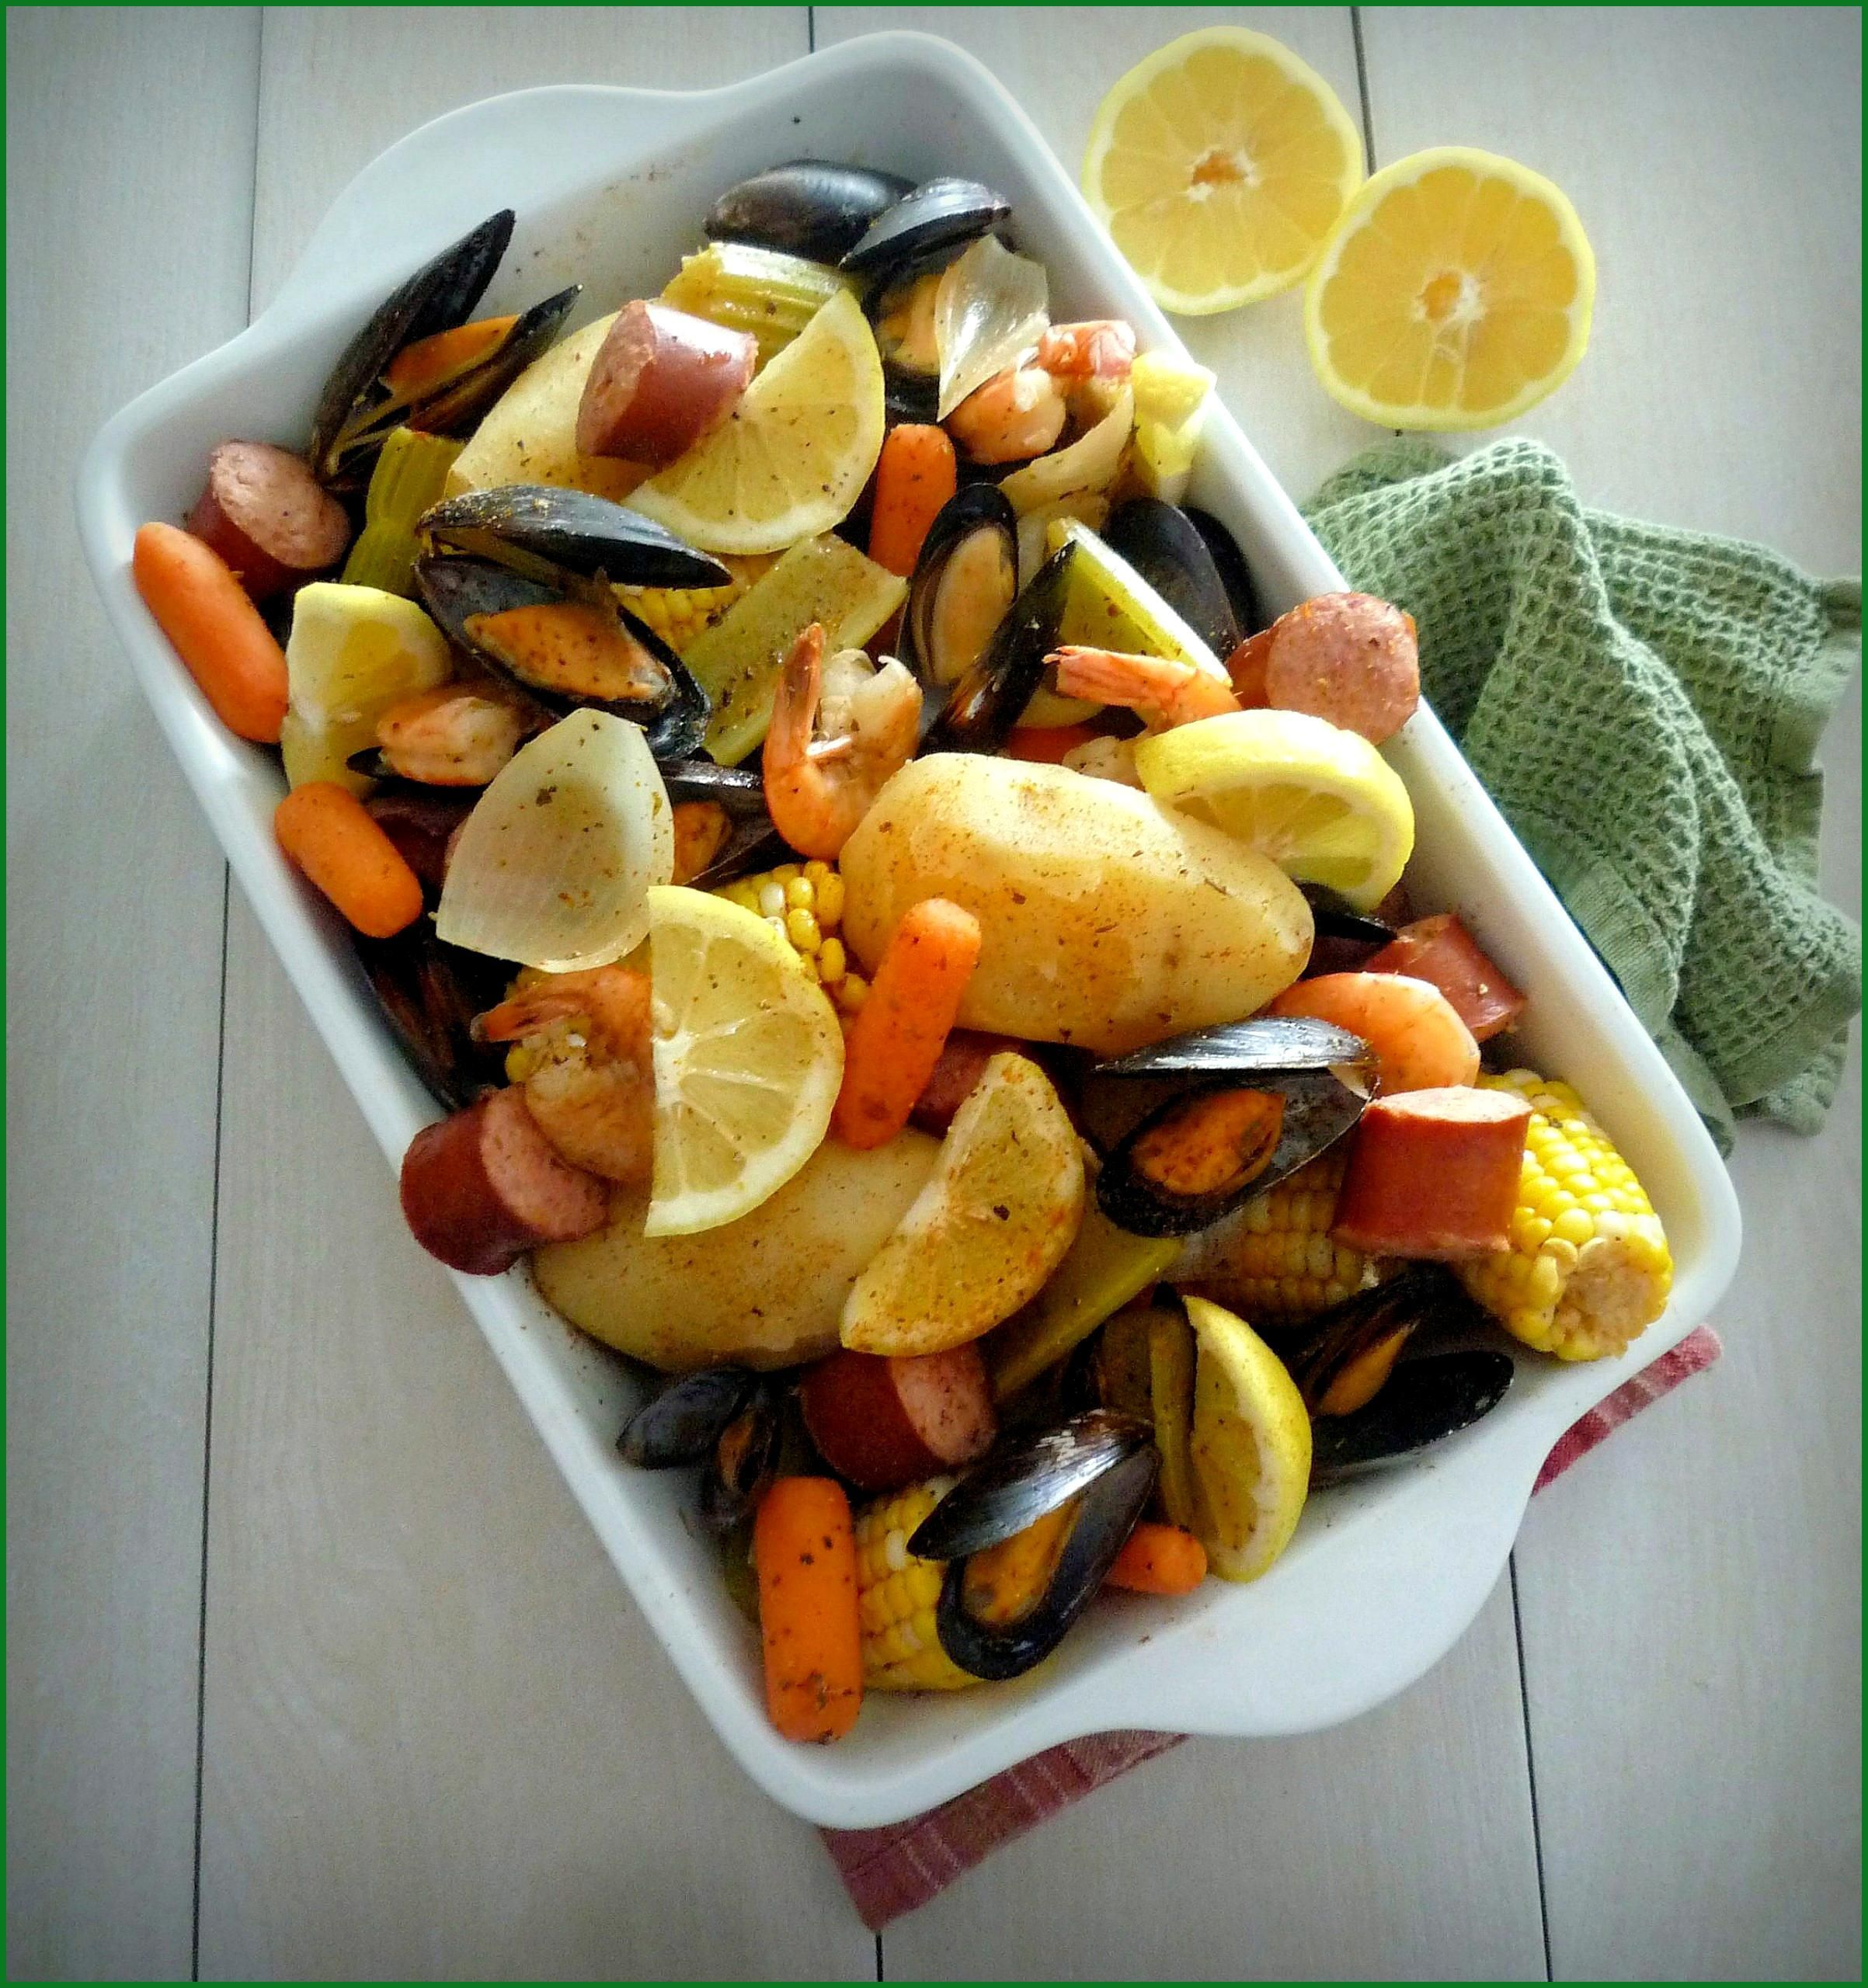 Seafood Boil with Andouille Sausage #seafoodboil Seafood Boil with Andouille Sausage, #Andouille #Boil #fishmarket #imitationlobster #kingseafood #lobsterrestaurant #obster #sausage #scallops #seafood #seafoodmarketnearme #seafoodpot #seafoodwholesale #seafoodboil